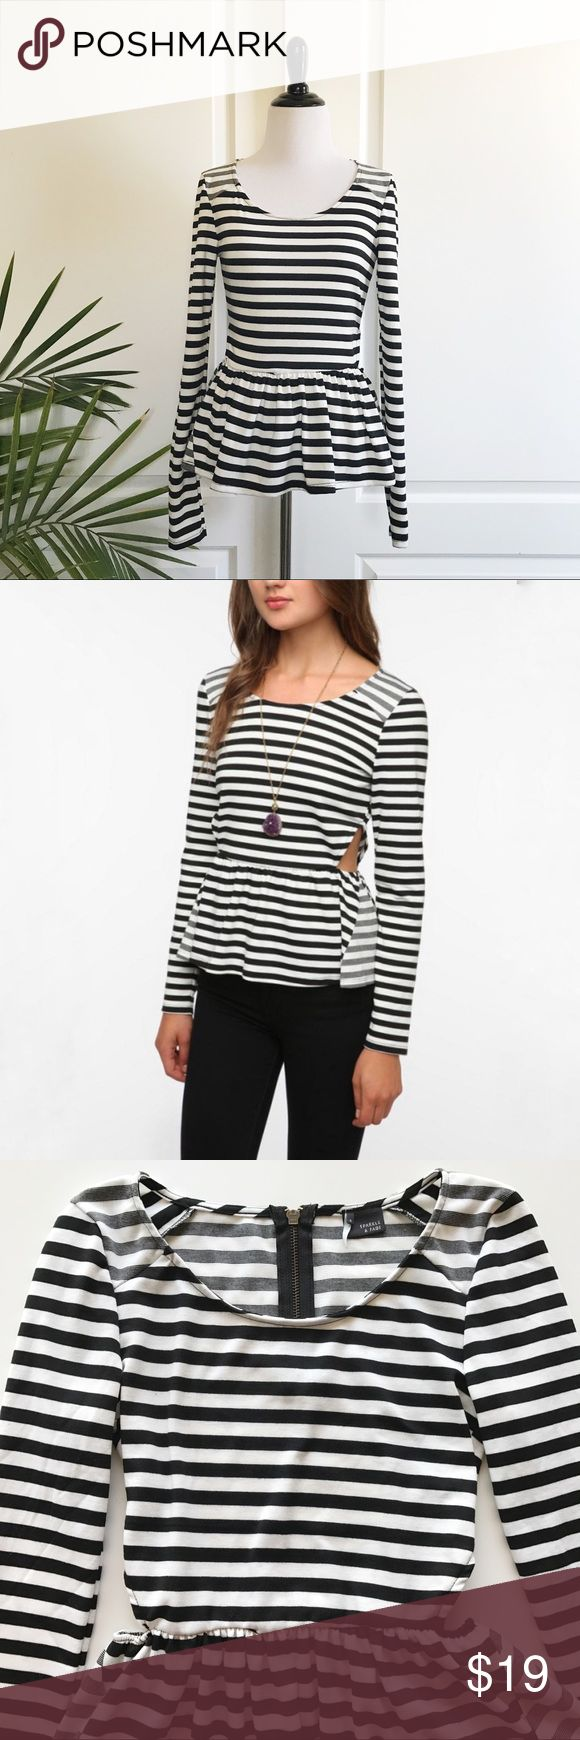 "Urban Outfitters Striped Side Cutout Peplum Top UO Sparkle and fade striped side cutout peplum top *Size Small - Underarm to underarm : 15"" flat / Waist : 12.5"" flat (elastic) / Length : 25"" *Long sleeves / Side cutouts / Black and white stripes / Made in USA  *97% polyester and 3% spandex  *New without tags *No trade G Urban Outfitters Tops"